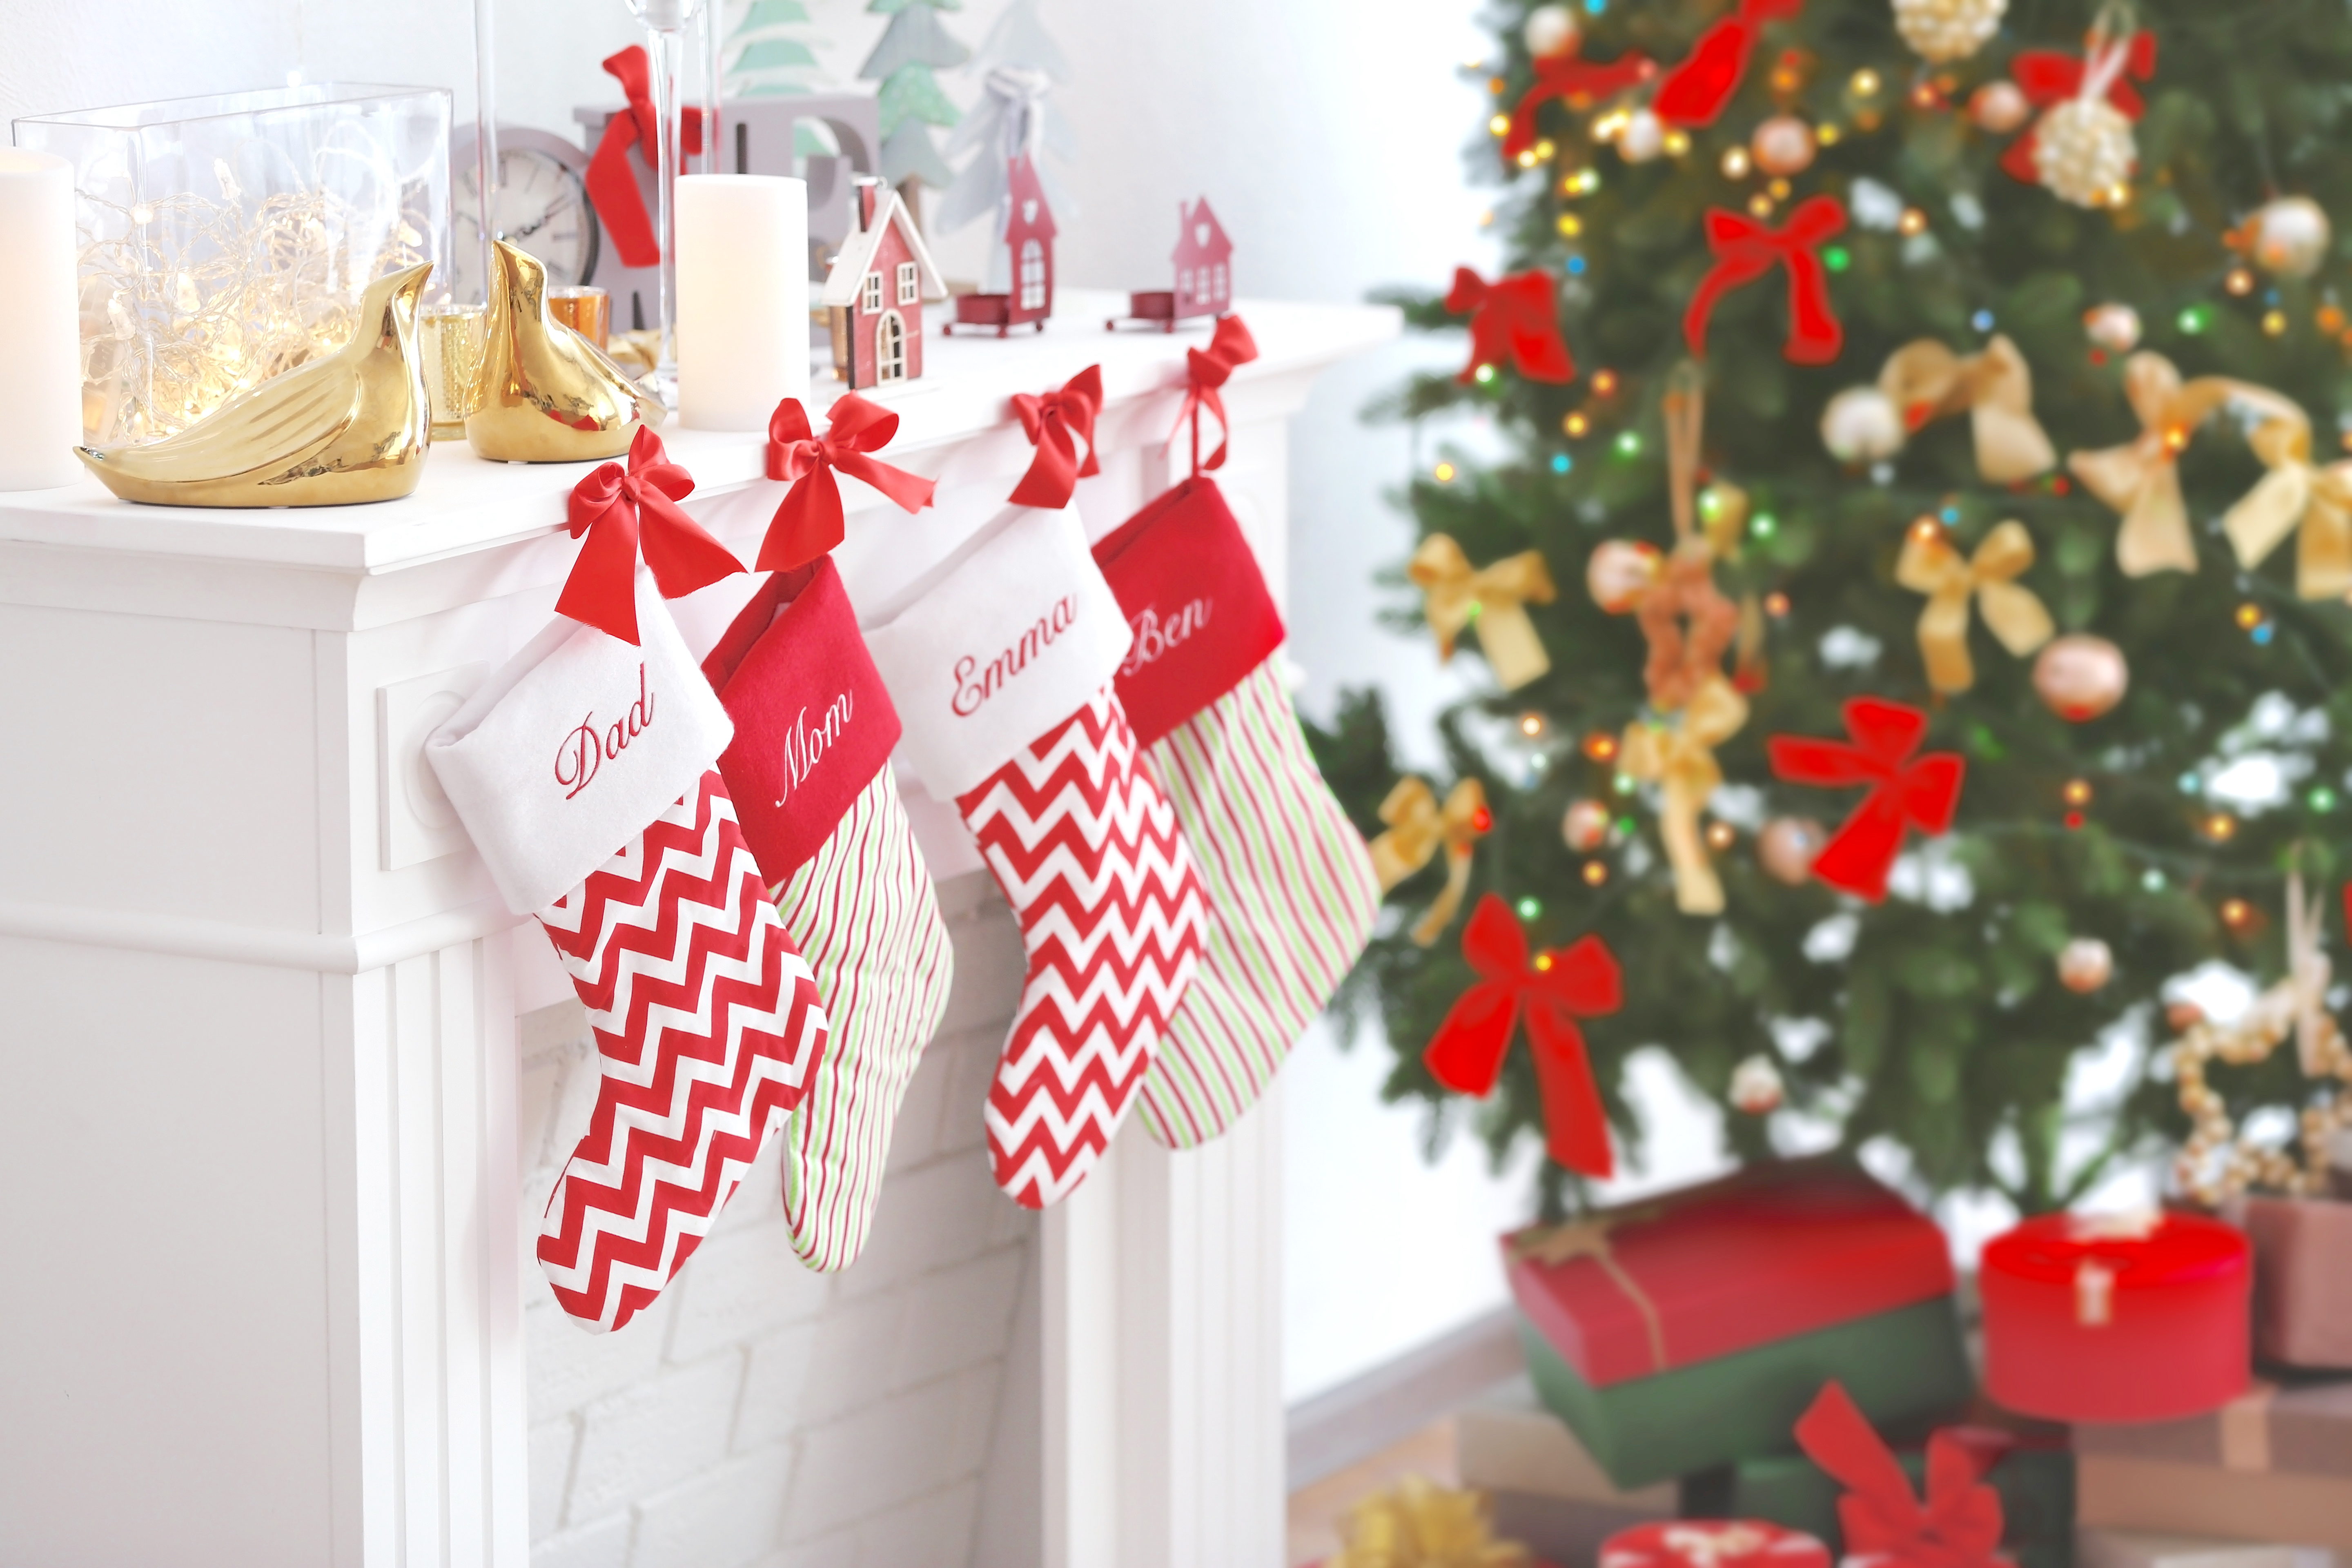 101 christmas stocking stuffer ideas the organised housewife - Pictures Of Decorated Christmas Stockings